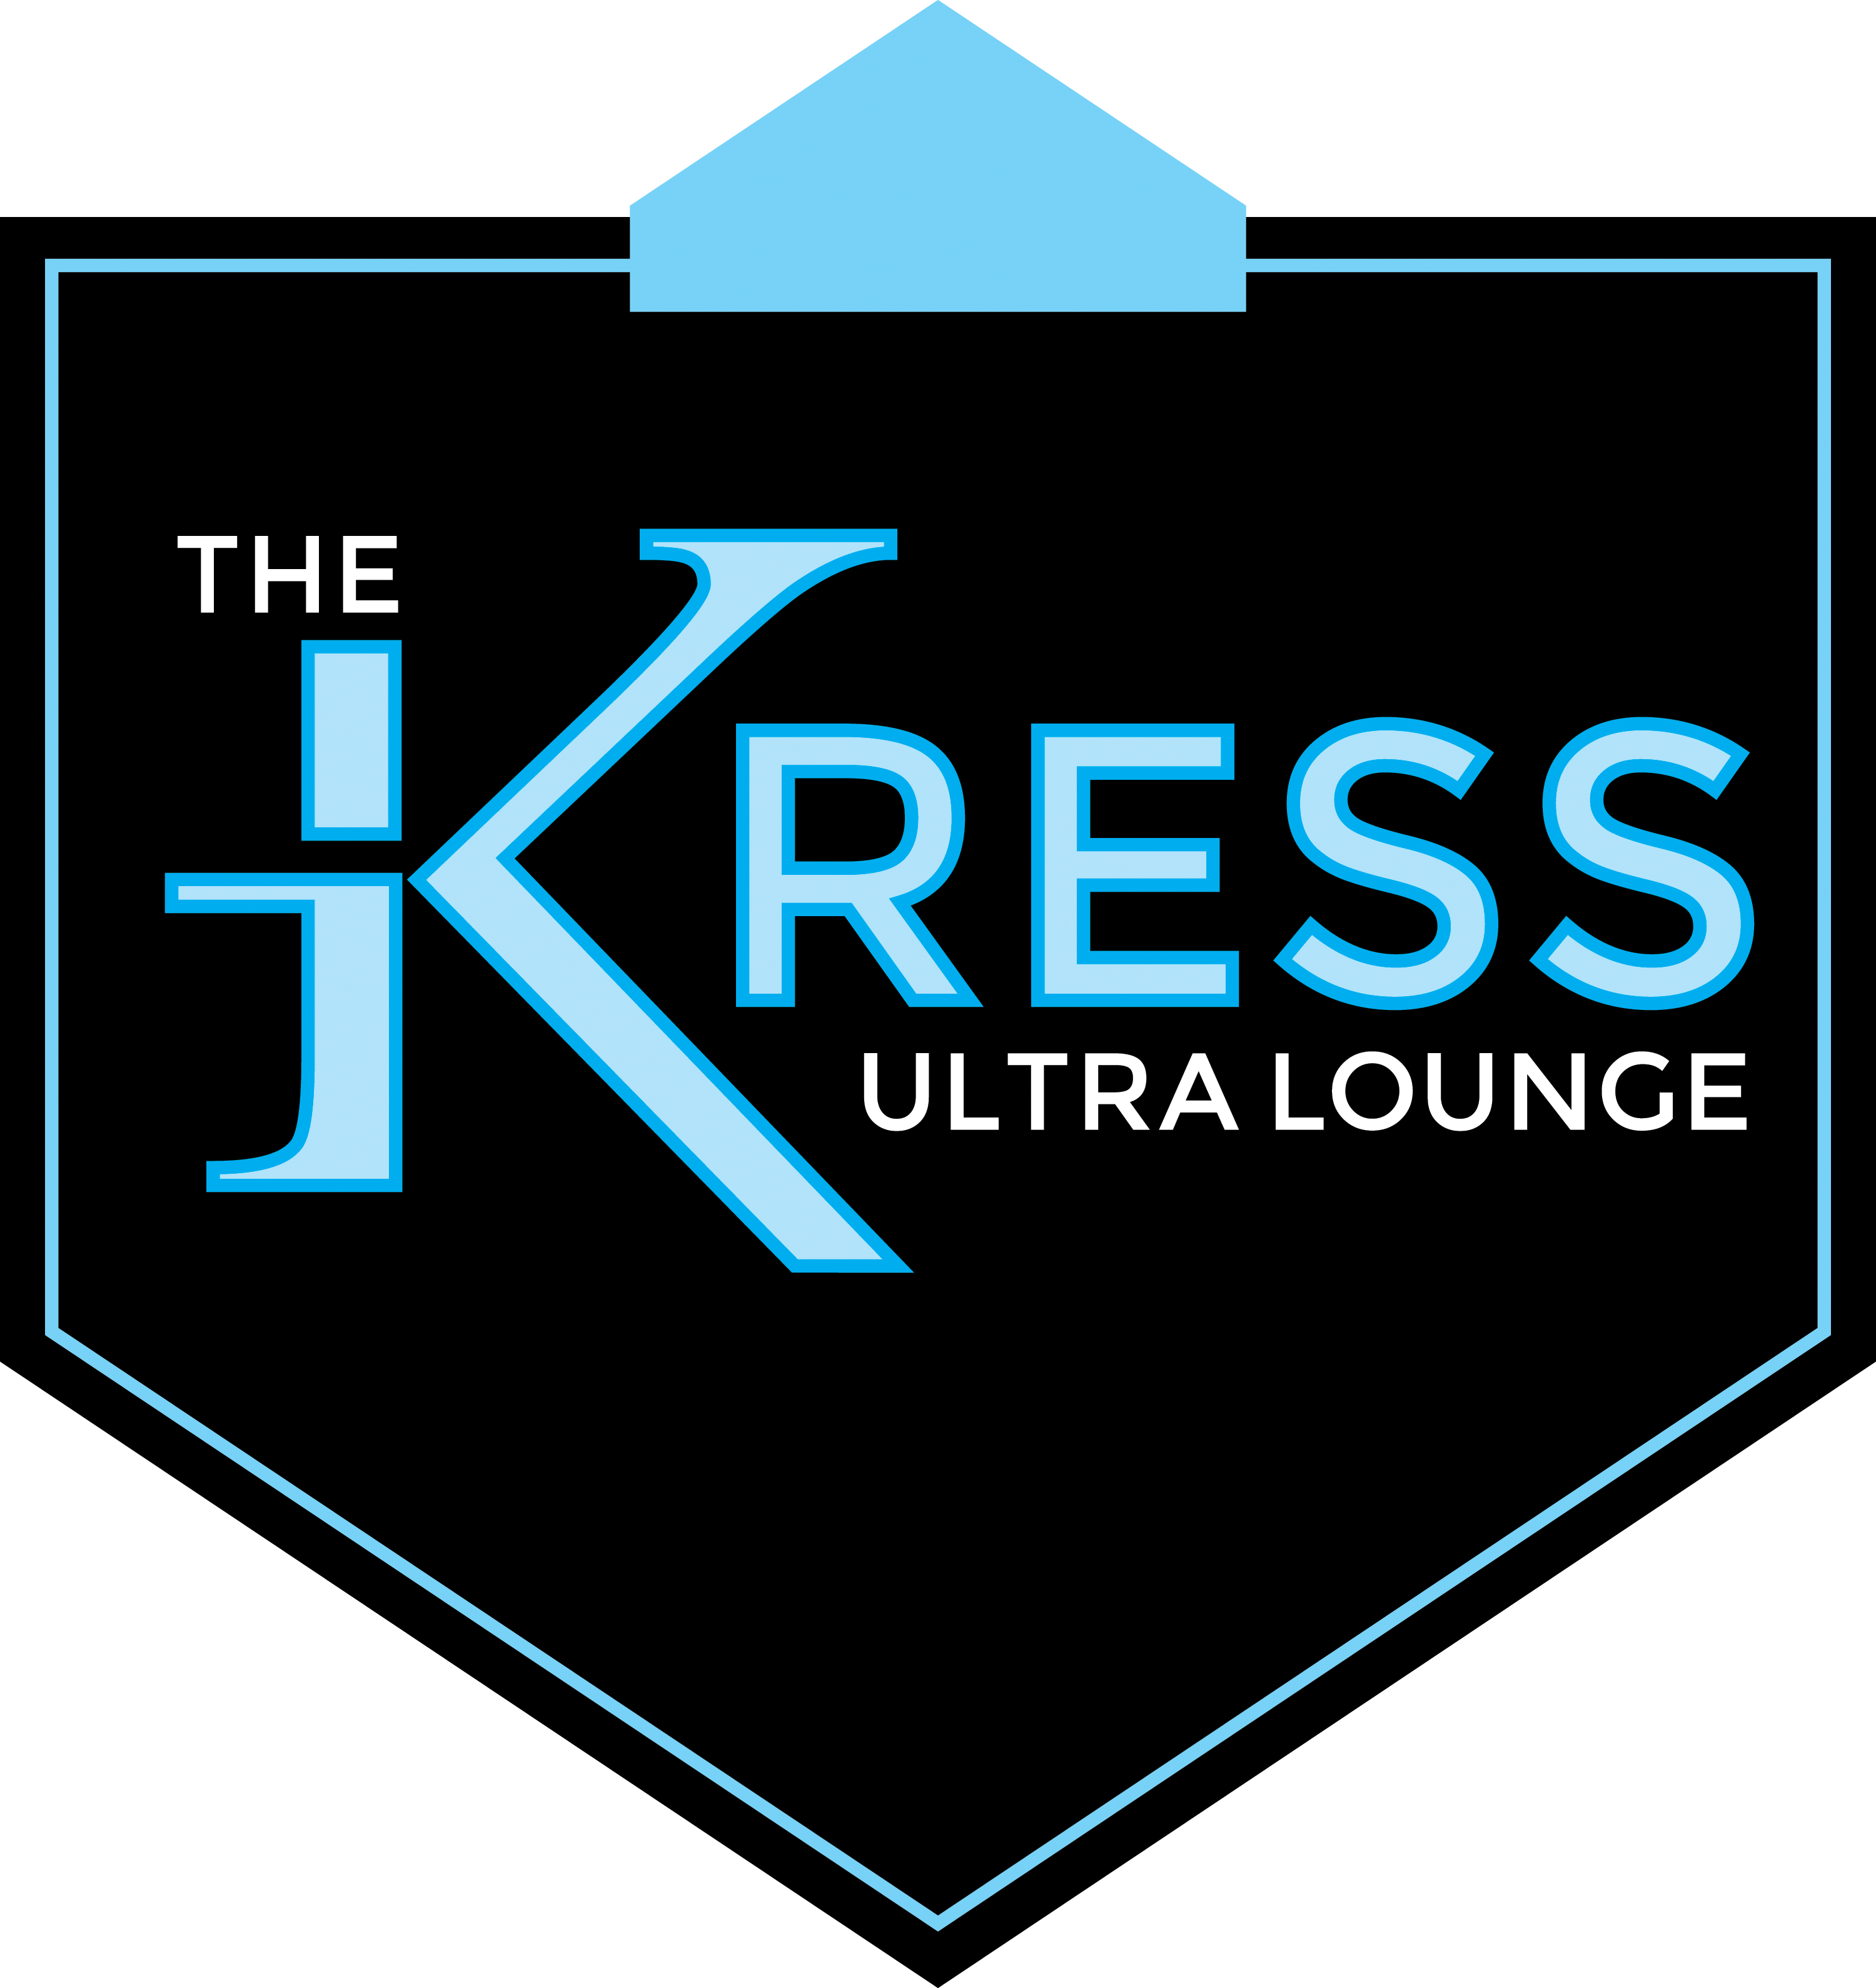 The Kress: Ultra Lounge